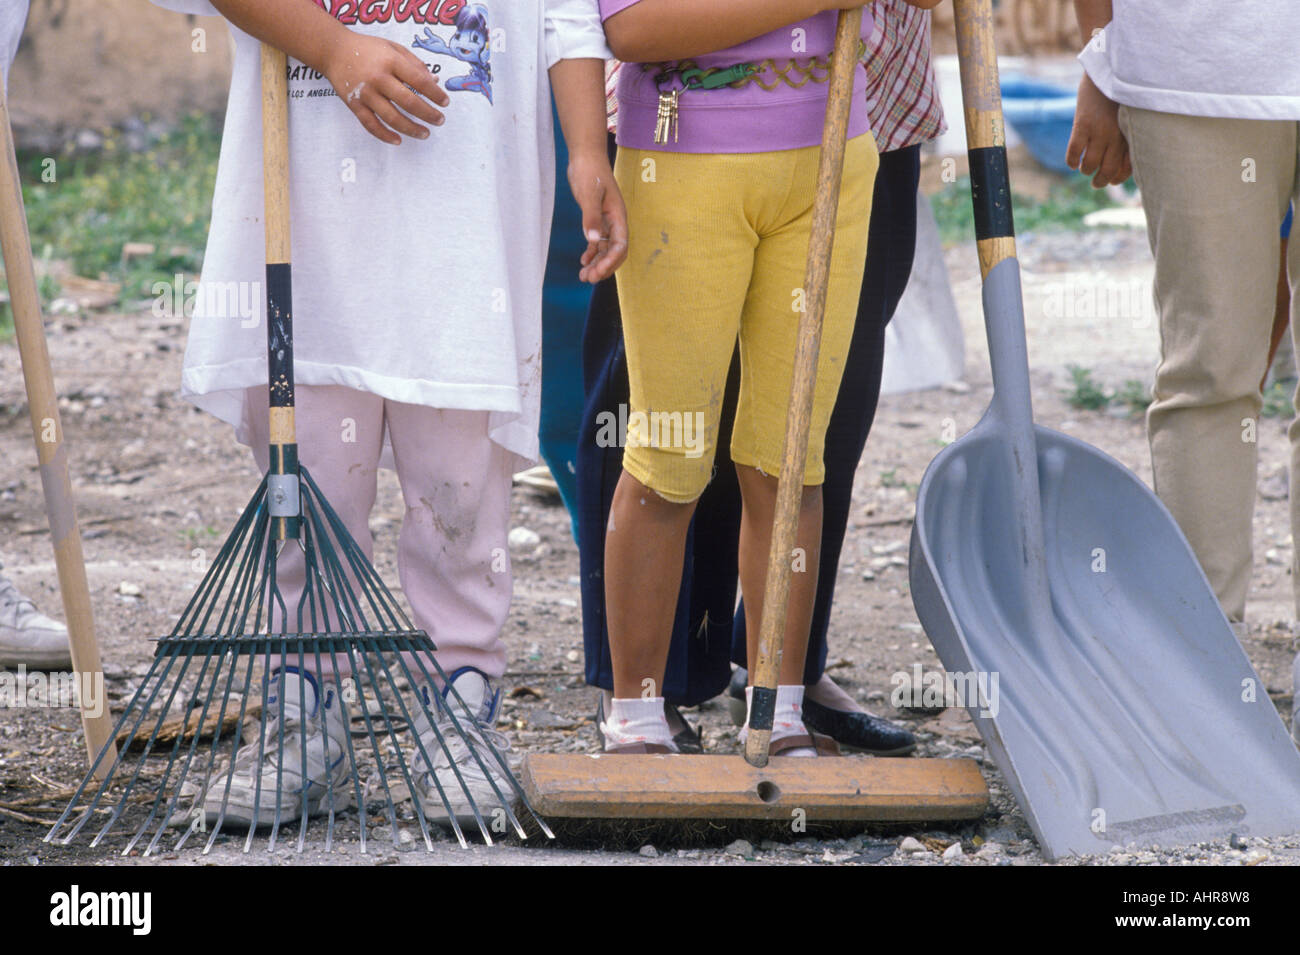 A close up of women holding cleanup tools - Stock Image